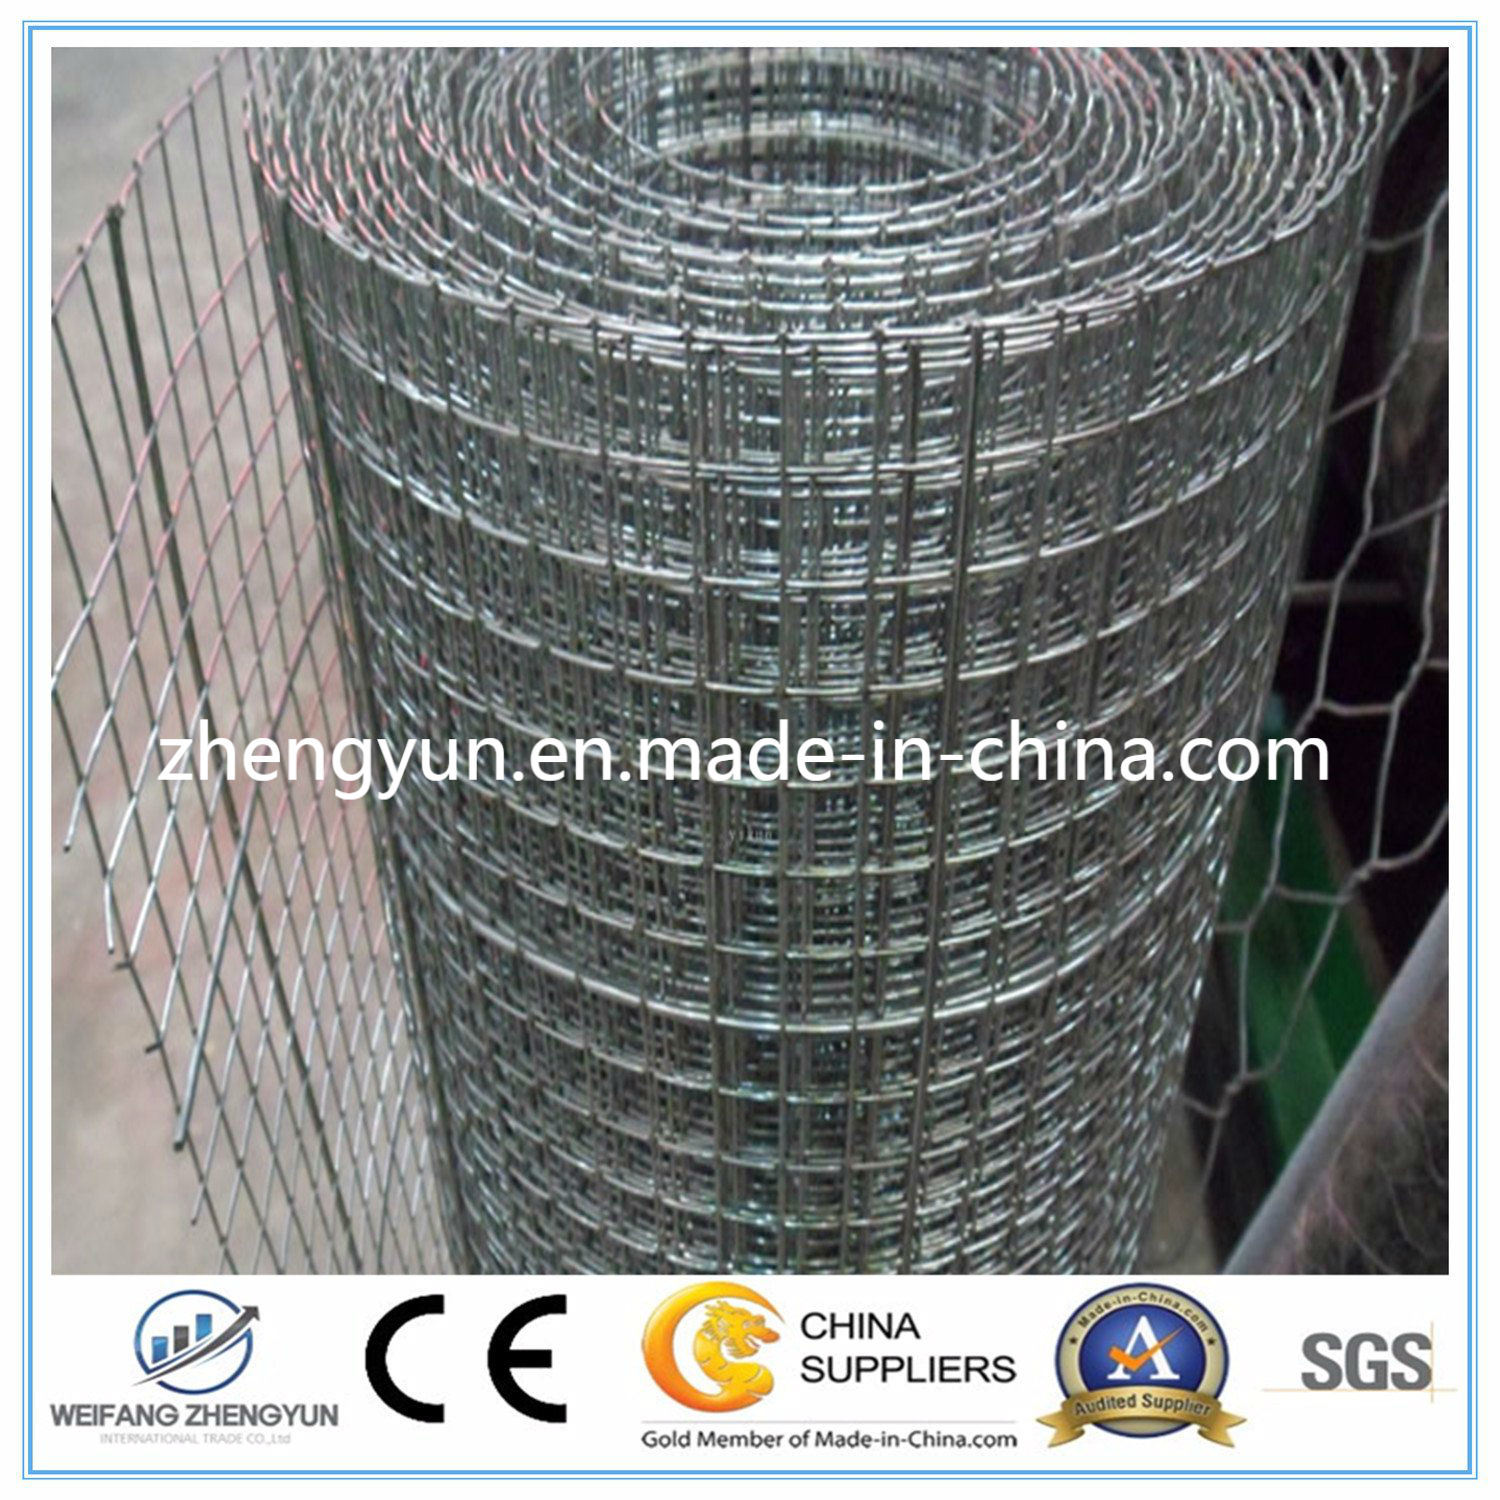 China Hot Dipped Galvanized Welded Wire Mesh/ Stainless Steel Welded ...